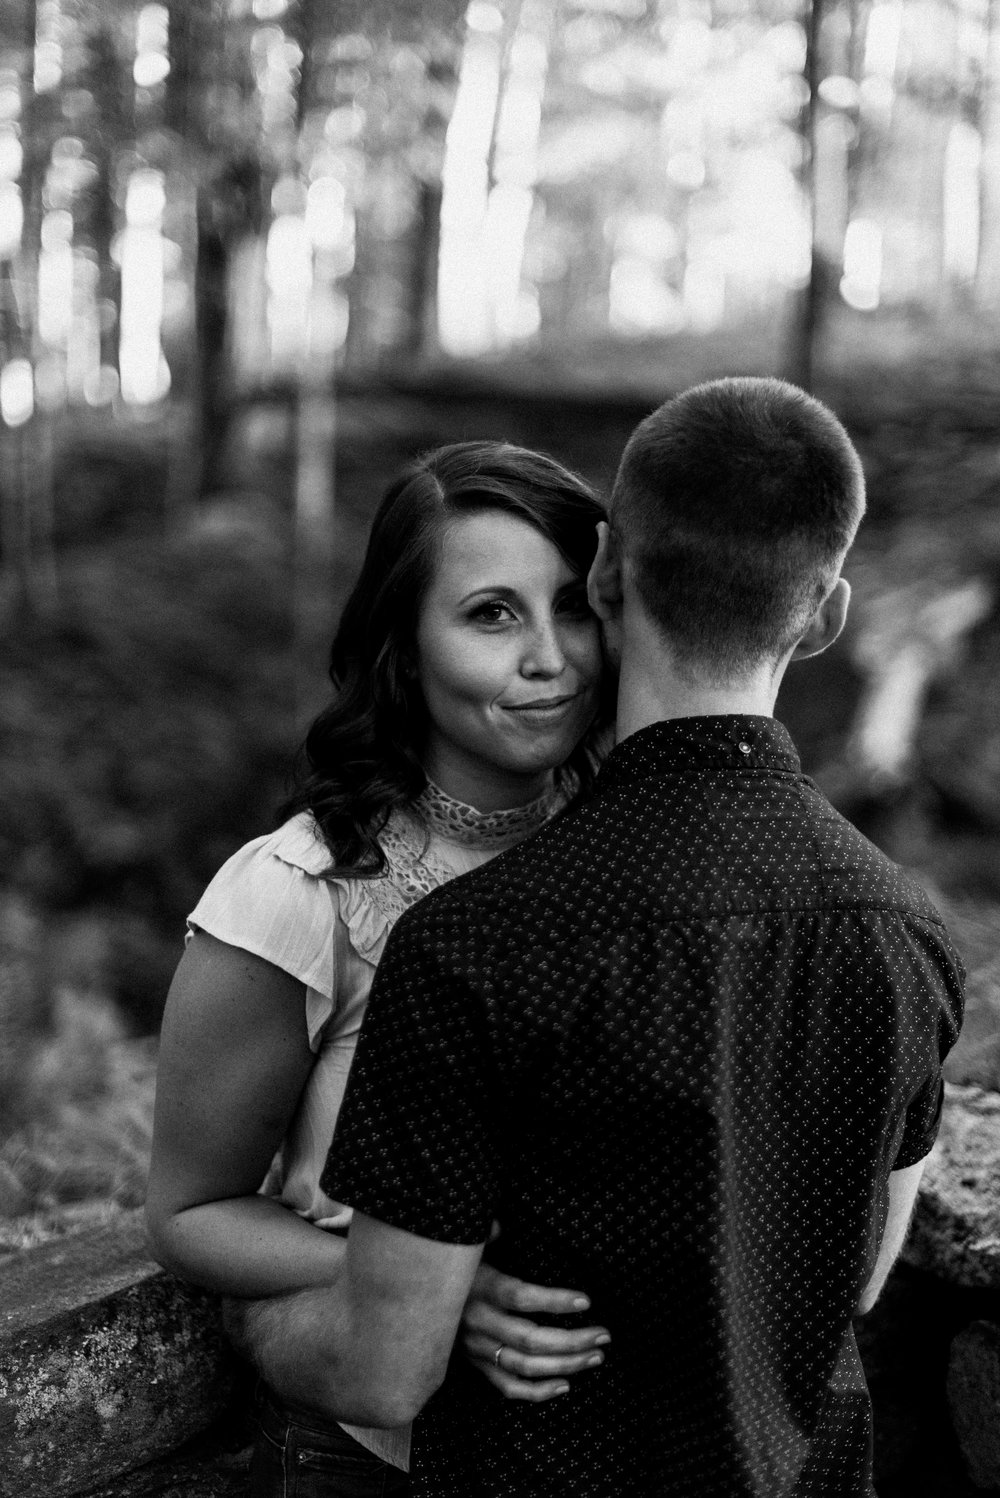 Amanda & Sean-Massachusetts-Forest Waterfront Engagement Session-Woodsy Outdoor Couples Session-Photographer-100.jpg